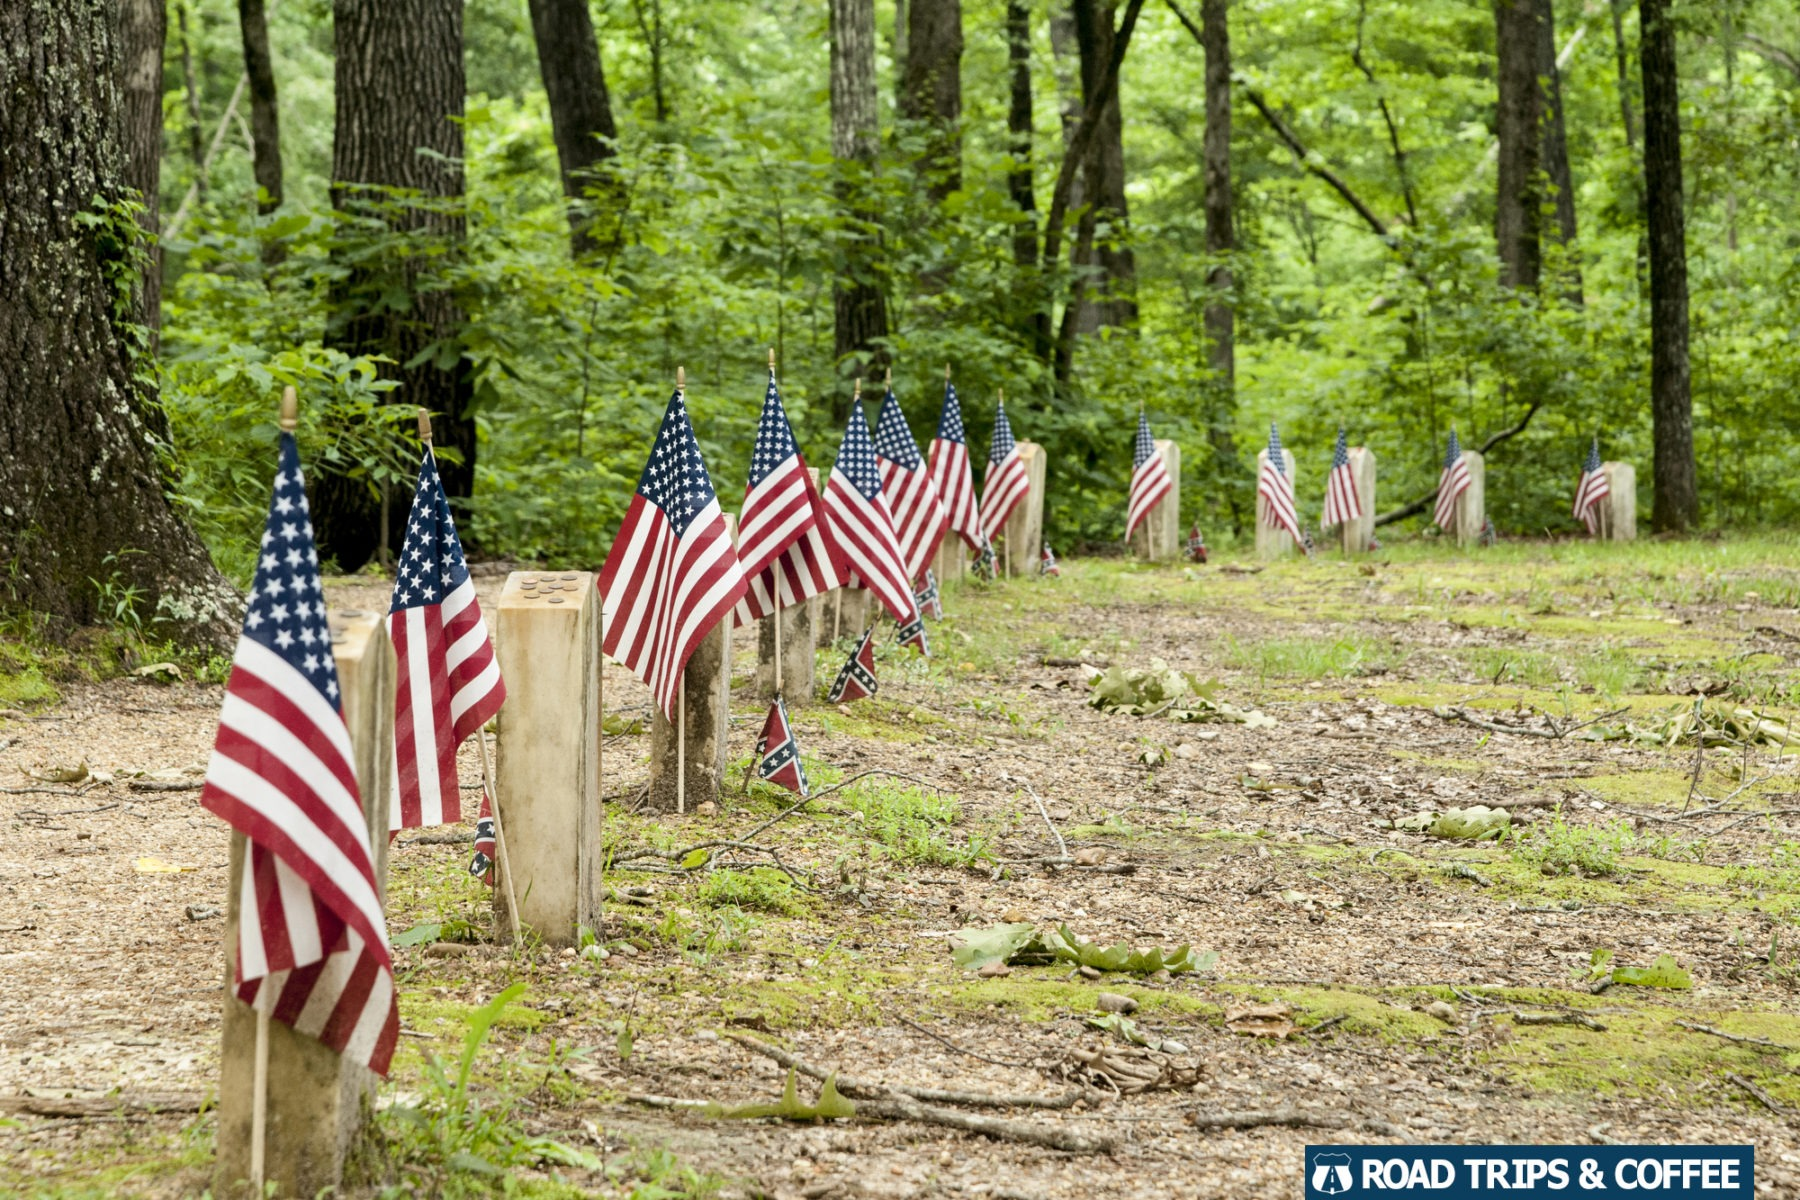 American flags adorn the small white Confederate Gravesites on the Natchez Trace Parkway in Mississippi